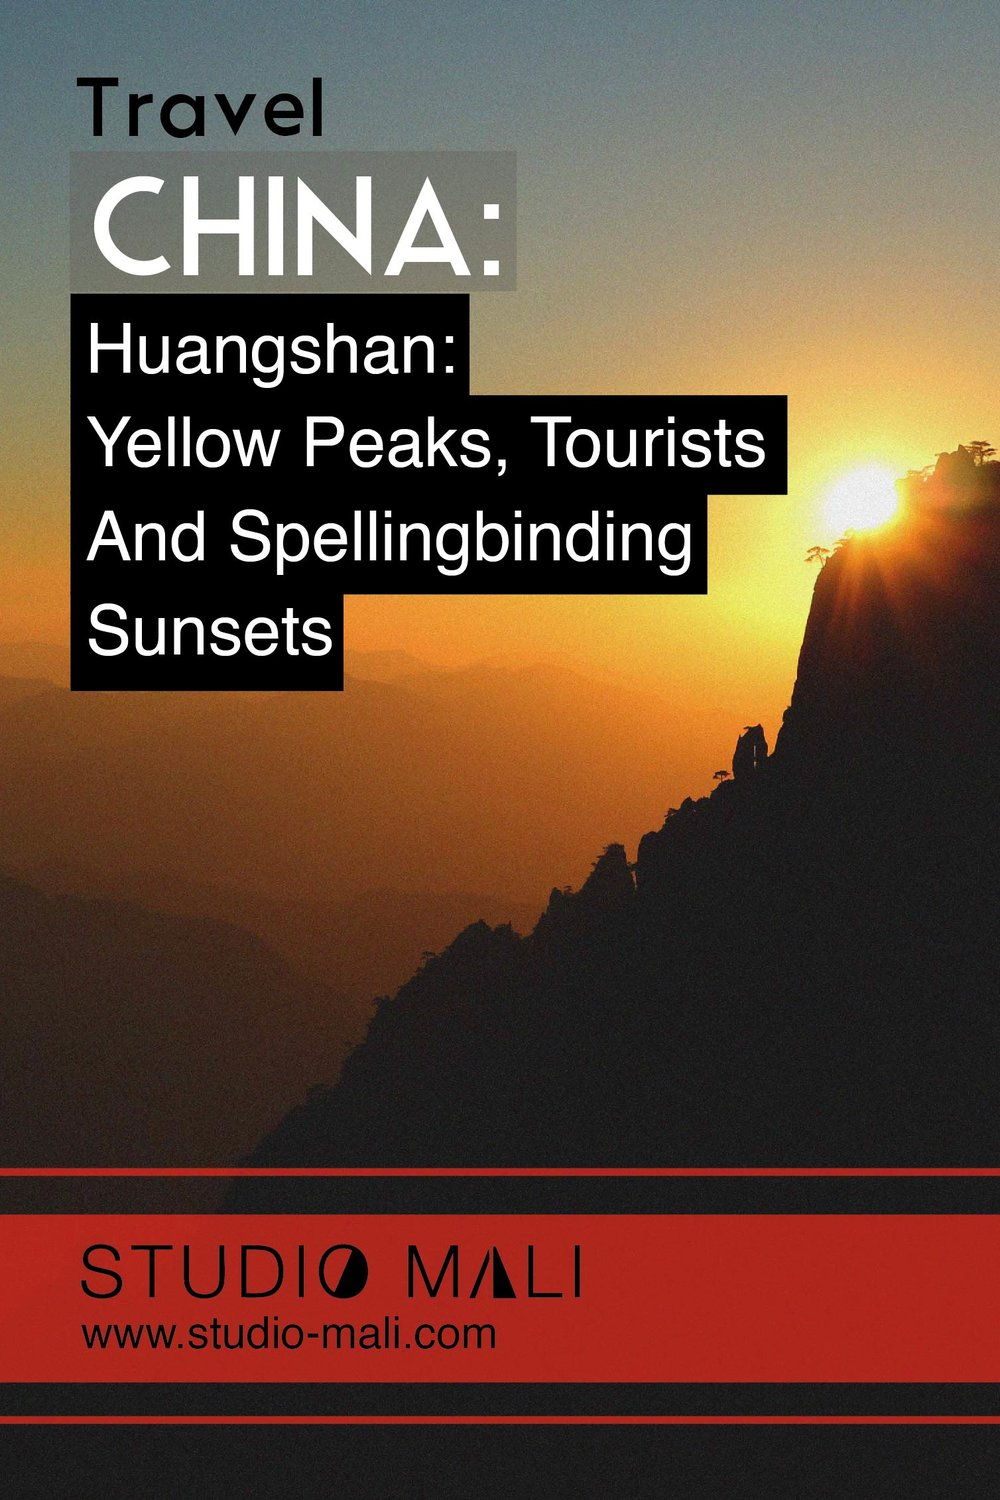 China - Huangshan - Yellow Peaks, Tourists & Spellbinding Sunsets, by Studio Mali.jpg